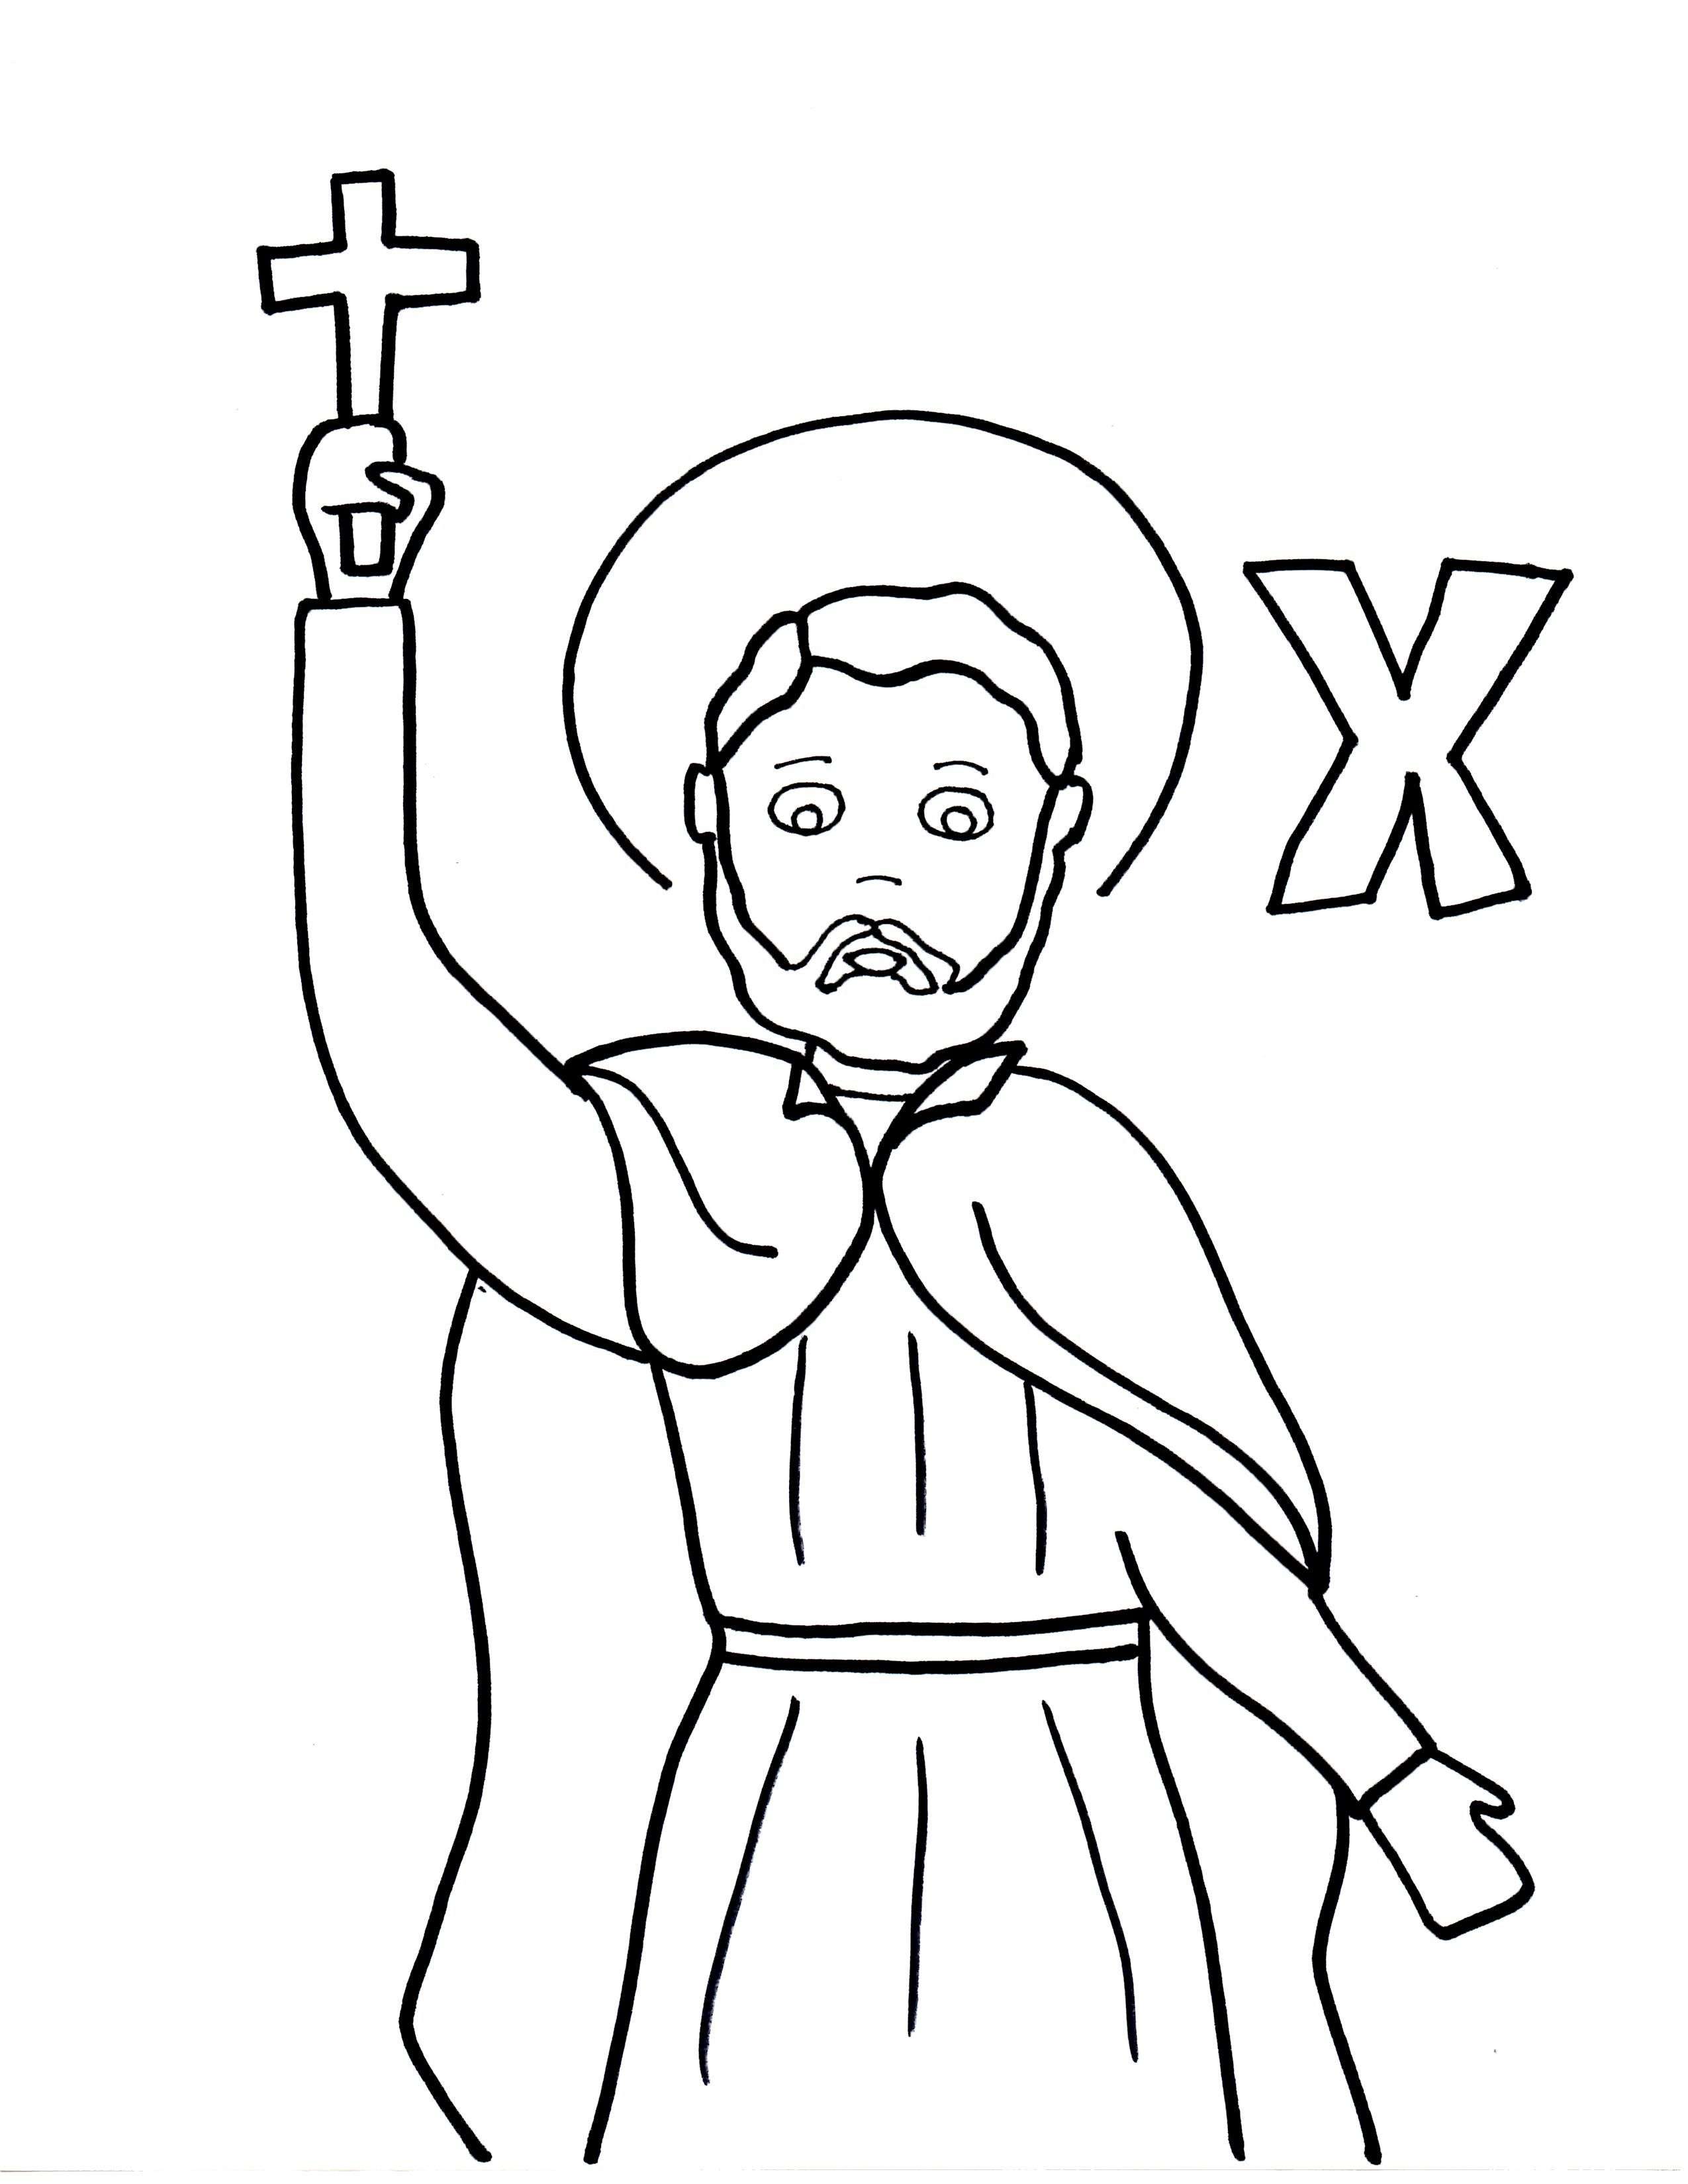 X Is For St Francis Xavier Francis Xavier Mother Teresa